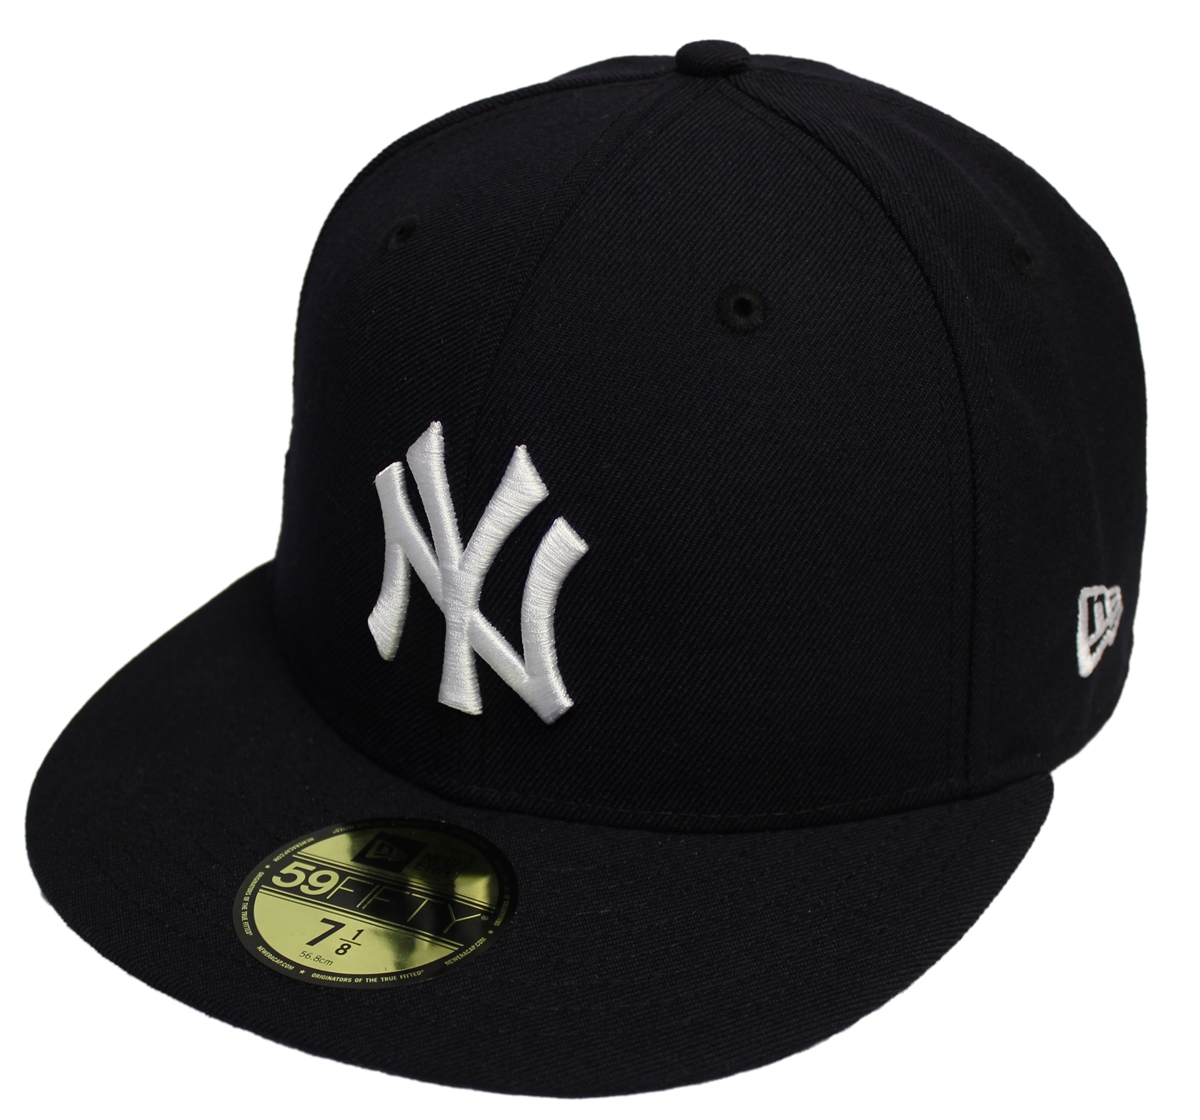 c5ea0edcf61 New Era 59Fifty 2009 World Series Champion NY Yankees Fitted Side ...